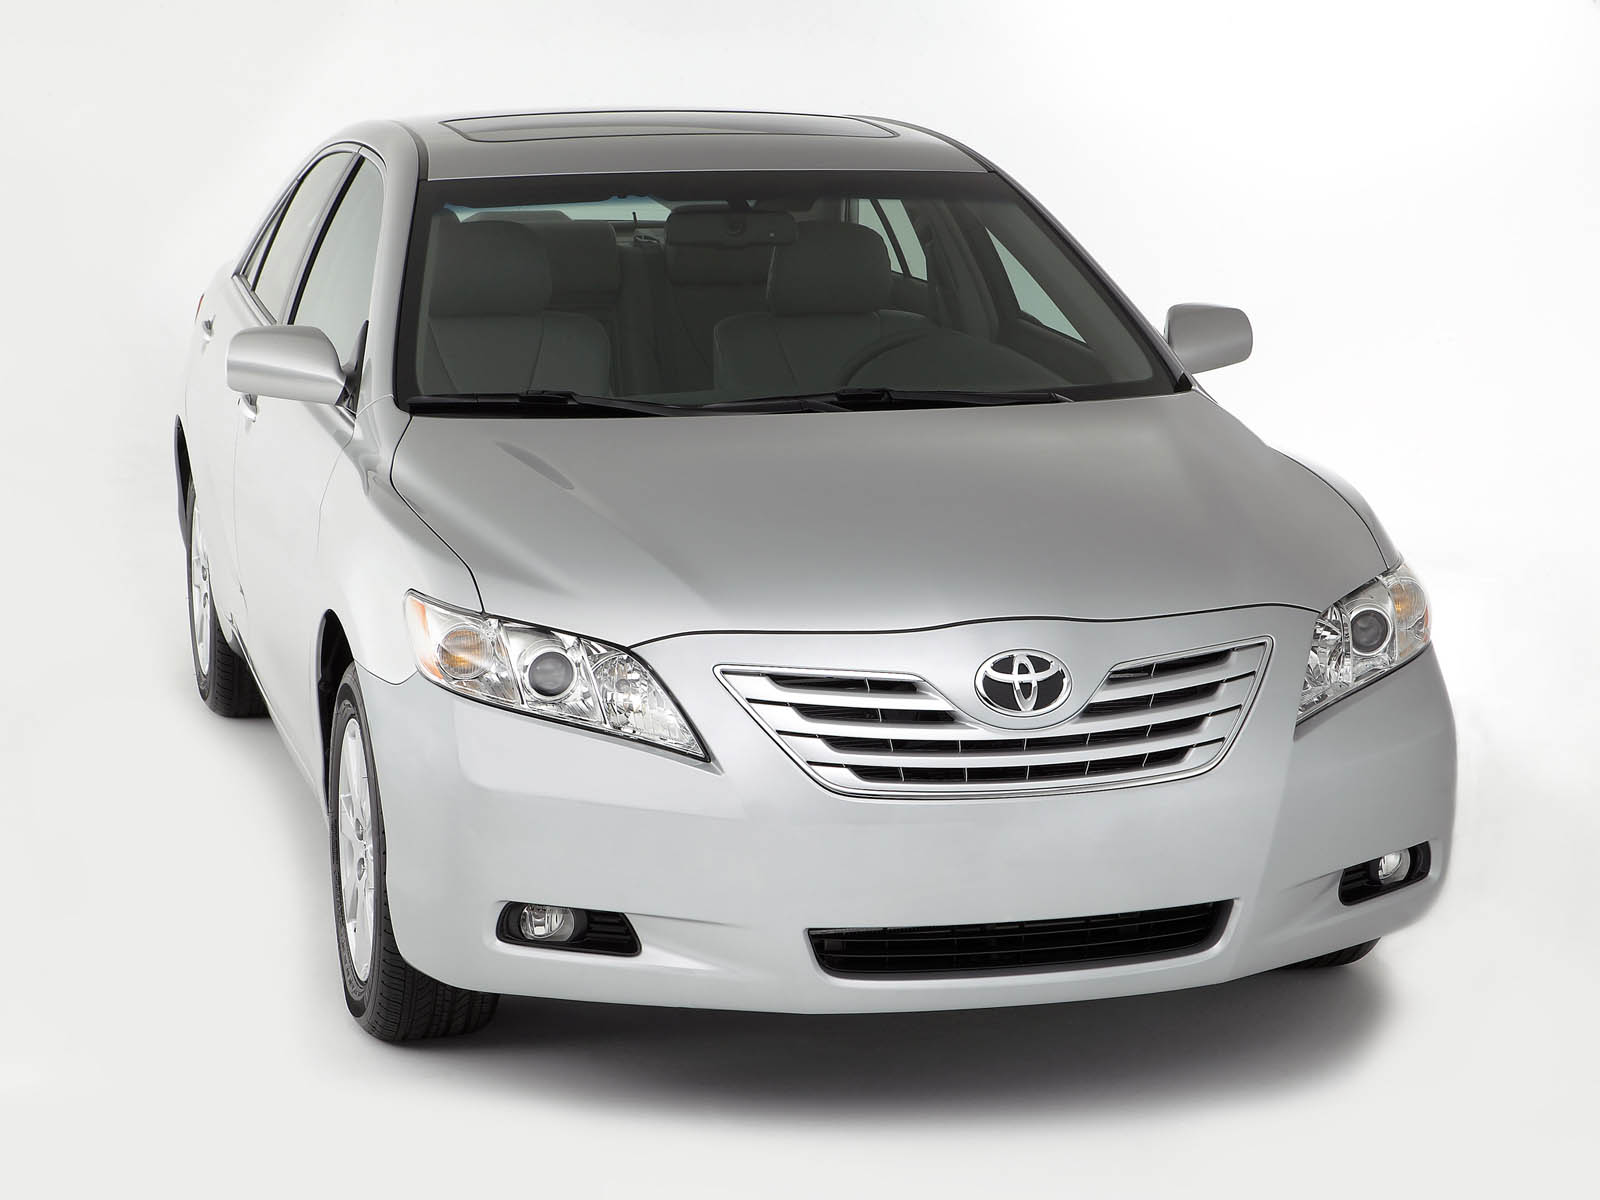 Toyota Camry Hd Wallpapers Wallpapers Toyota Camry Car Wallpapers